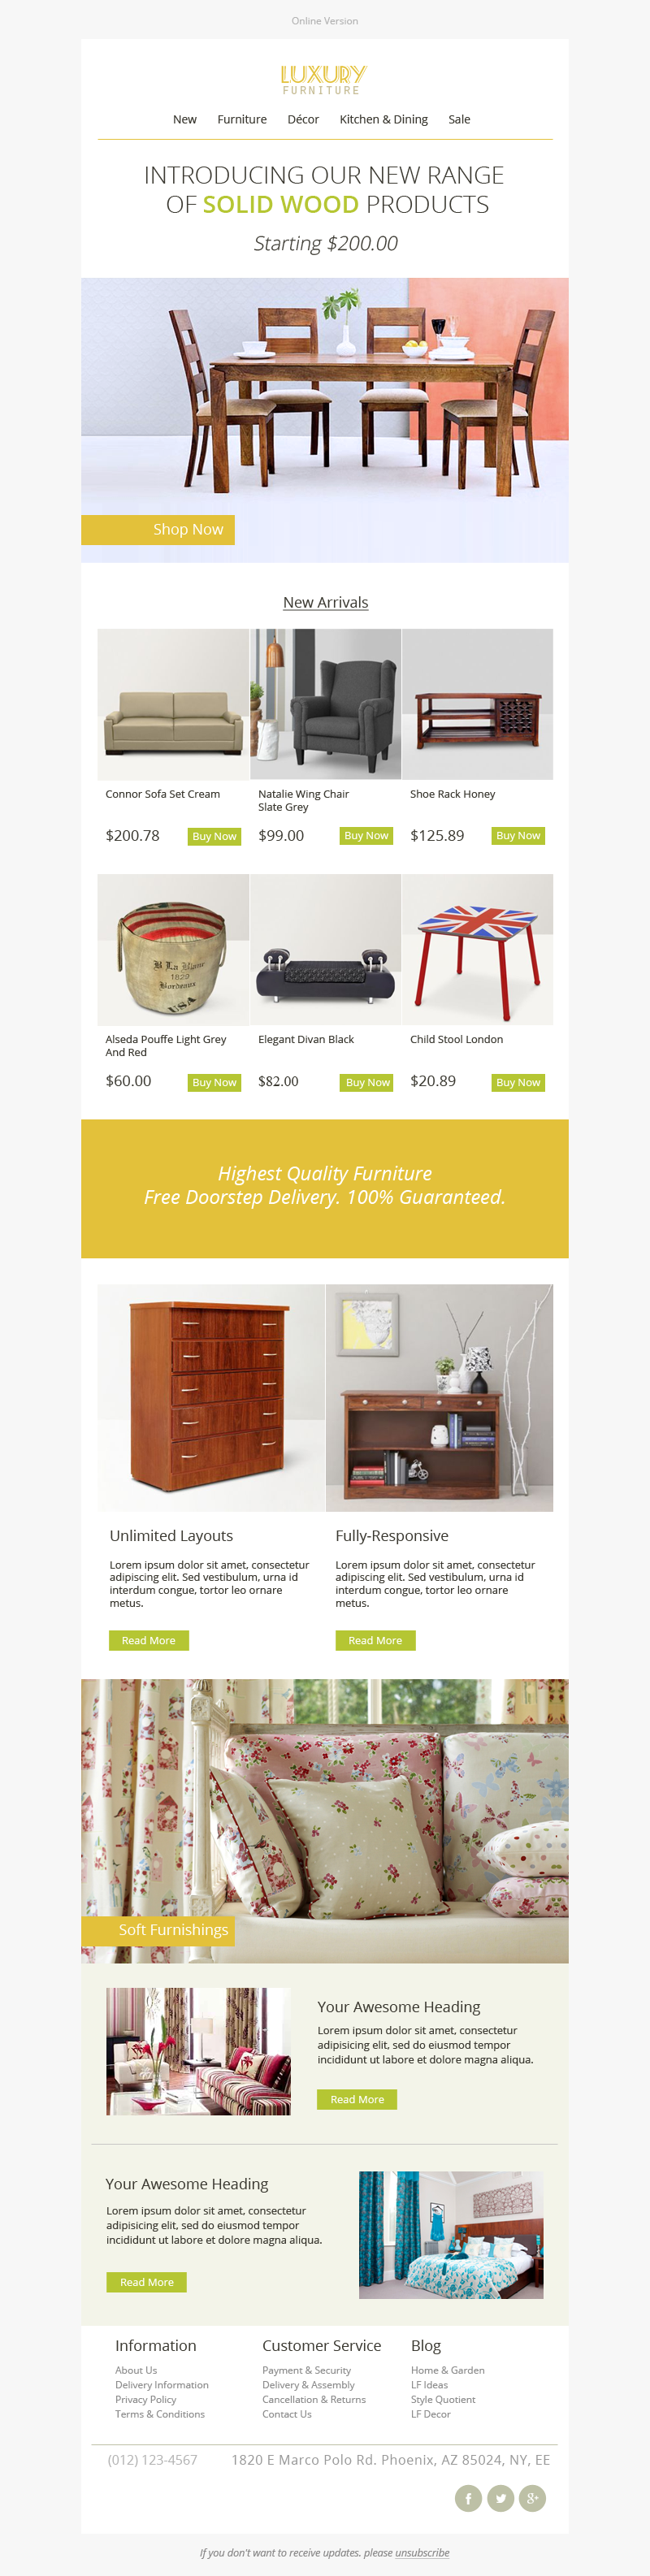 Luxury Furniture Stamplia Builder  Sales  Email Templates